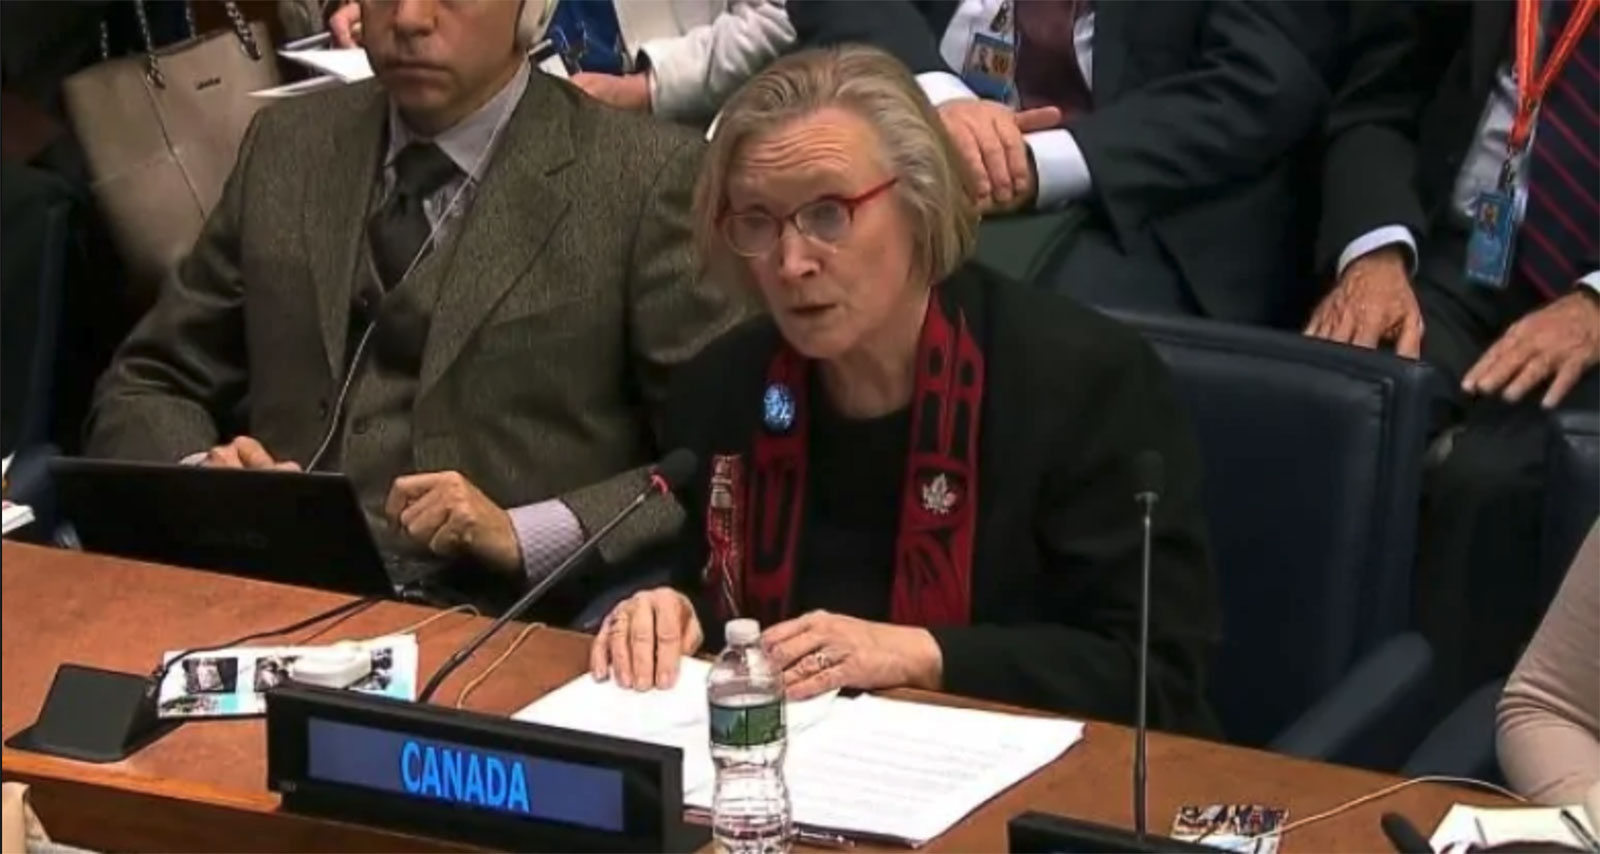 Canada officially adopts UN Declaration on the Rights of Indigenous Peoples